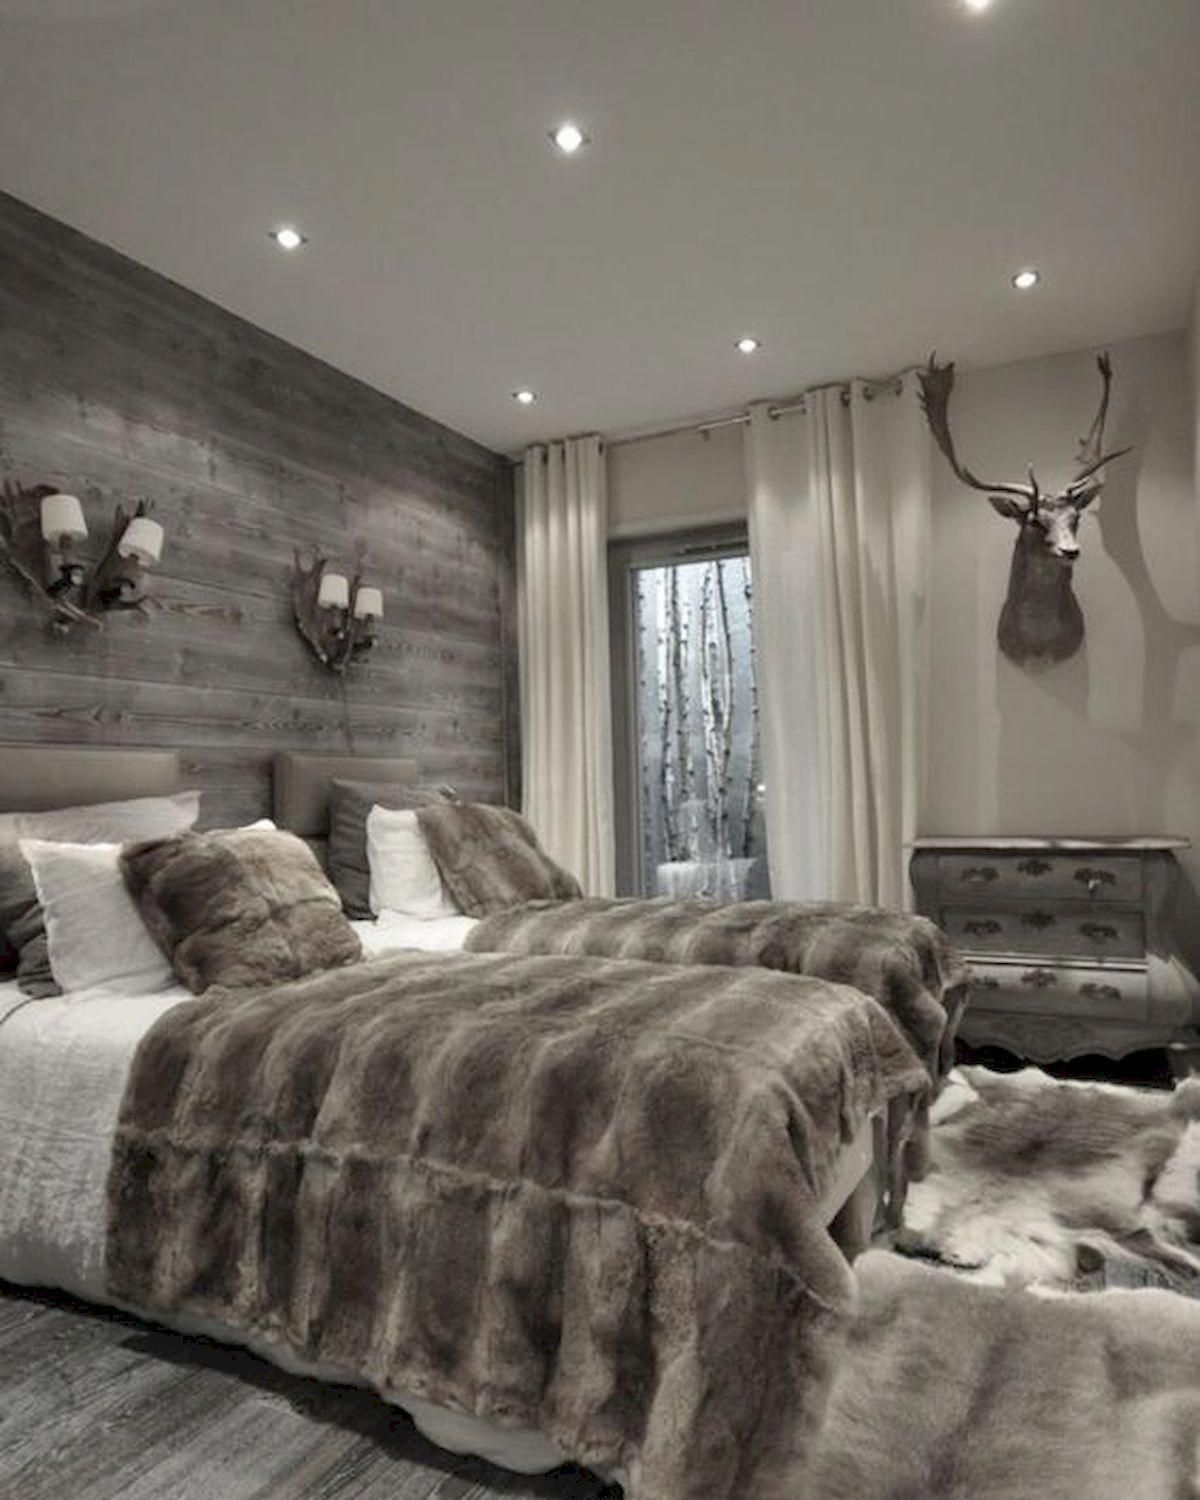 How To Choose Curtains For A Bedroom With Images Rustic